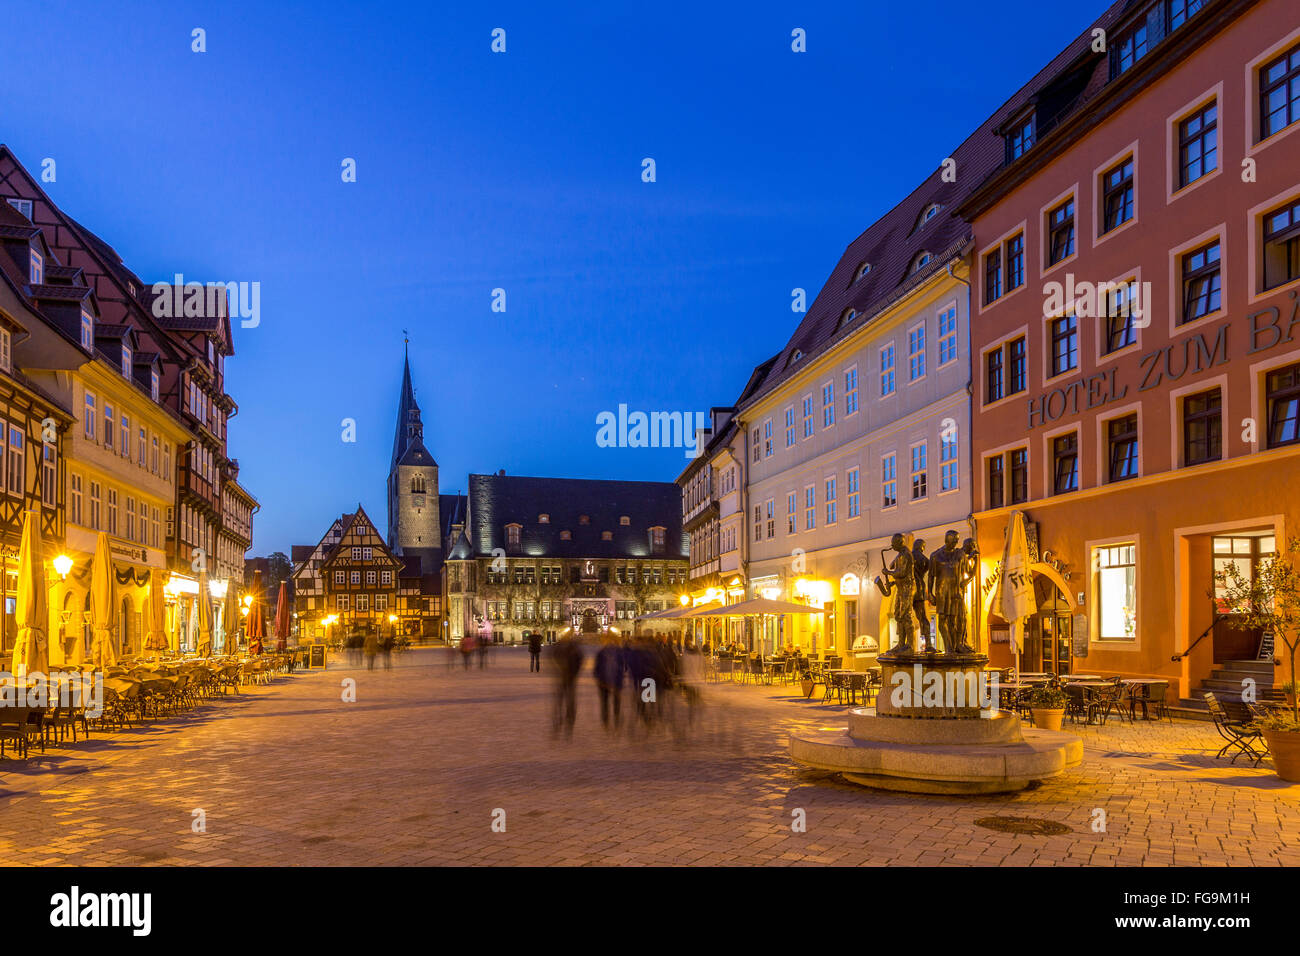 geography / travel, Saxony-Anhalt, Quedlinburg, marketplace, Additional-Rights-Clearance-Info-Not-Available - Stock Image